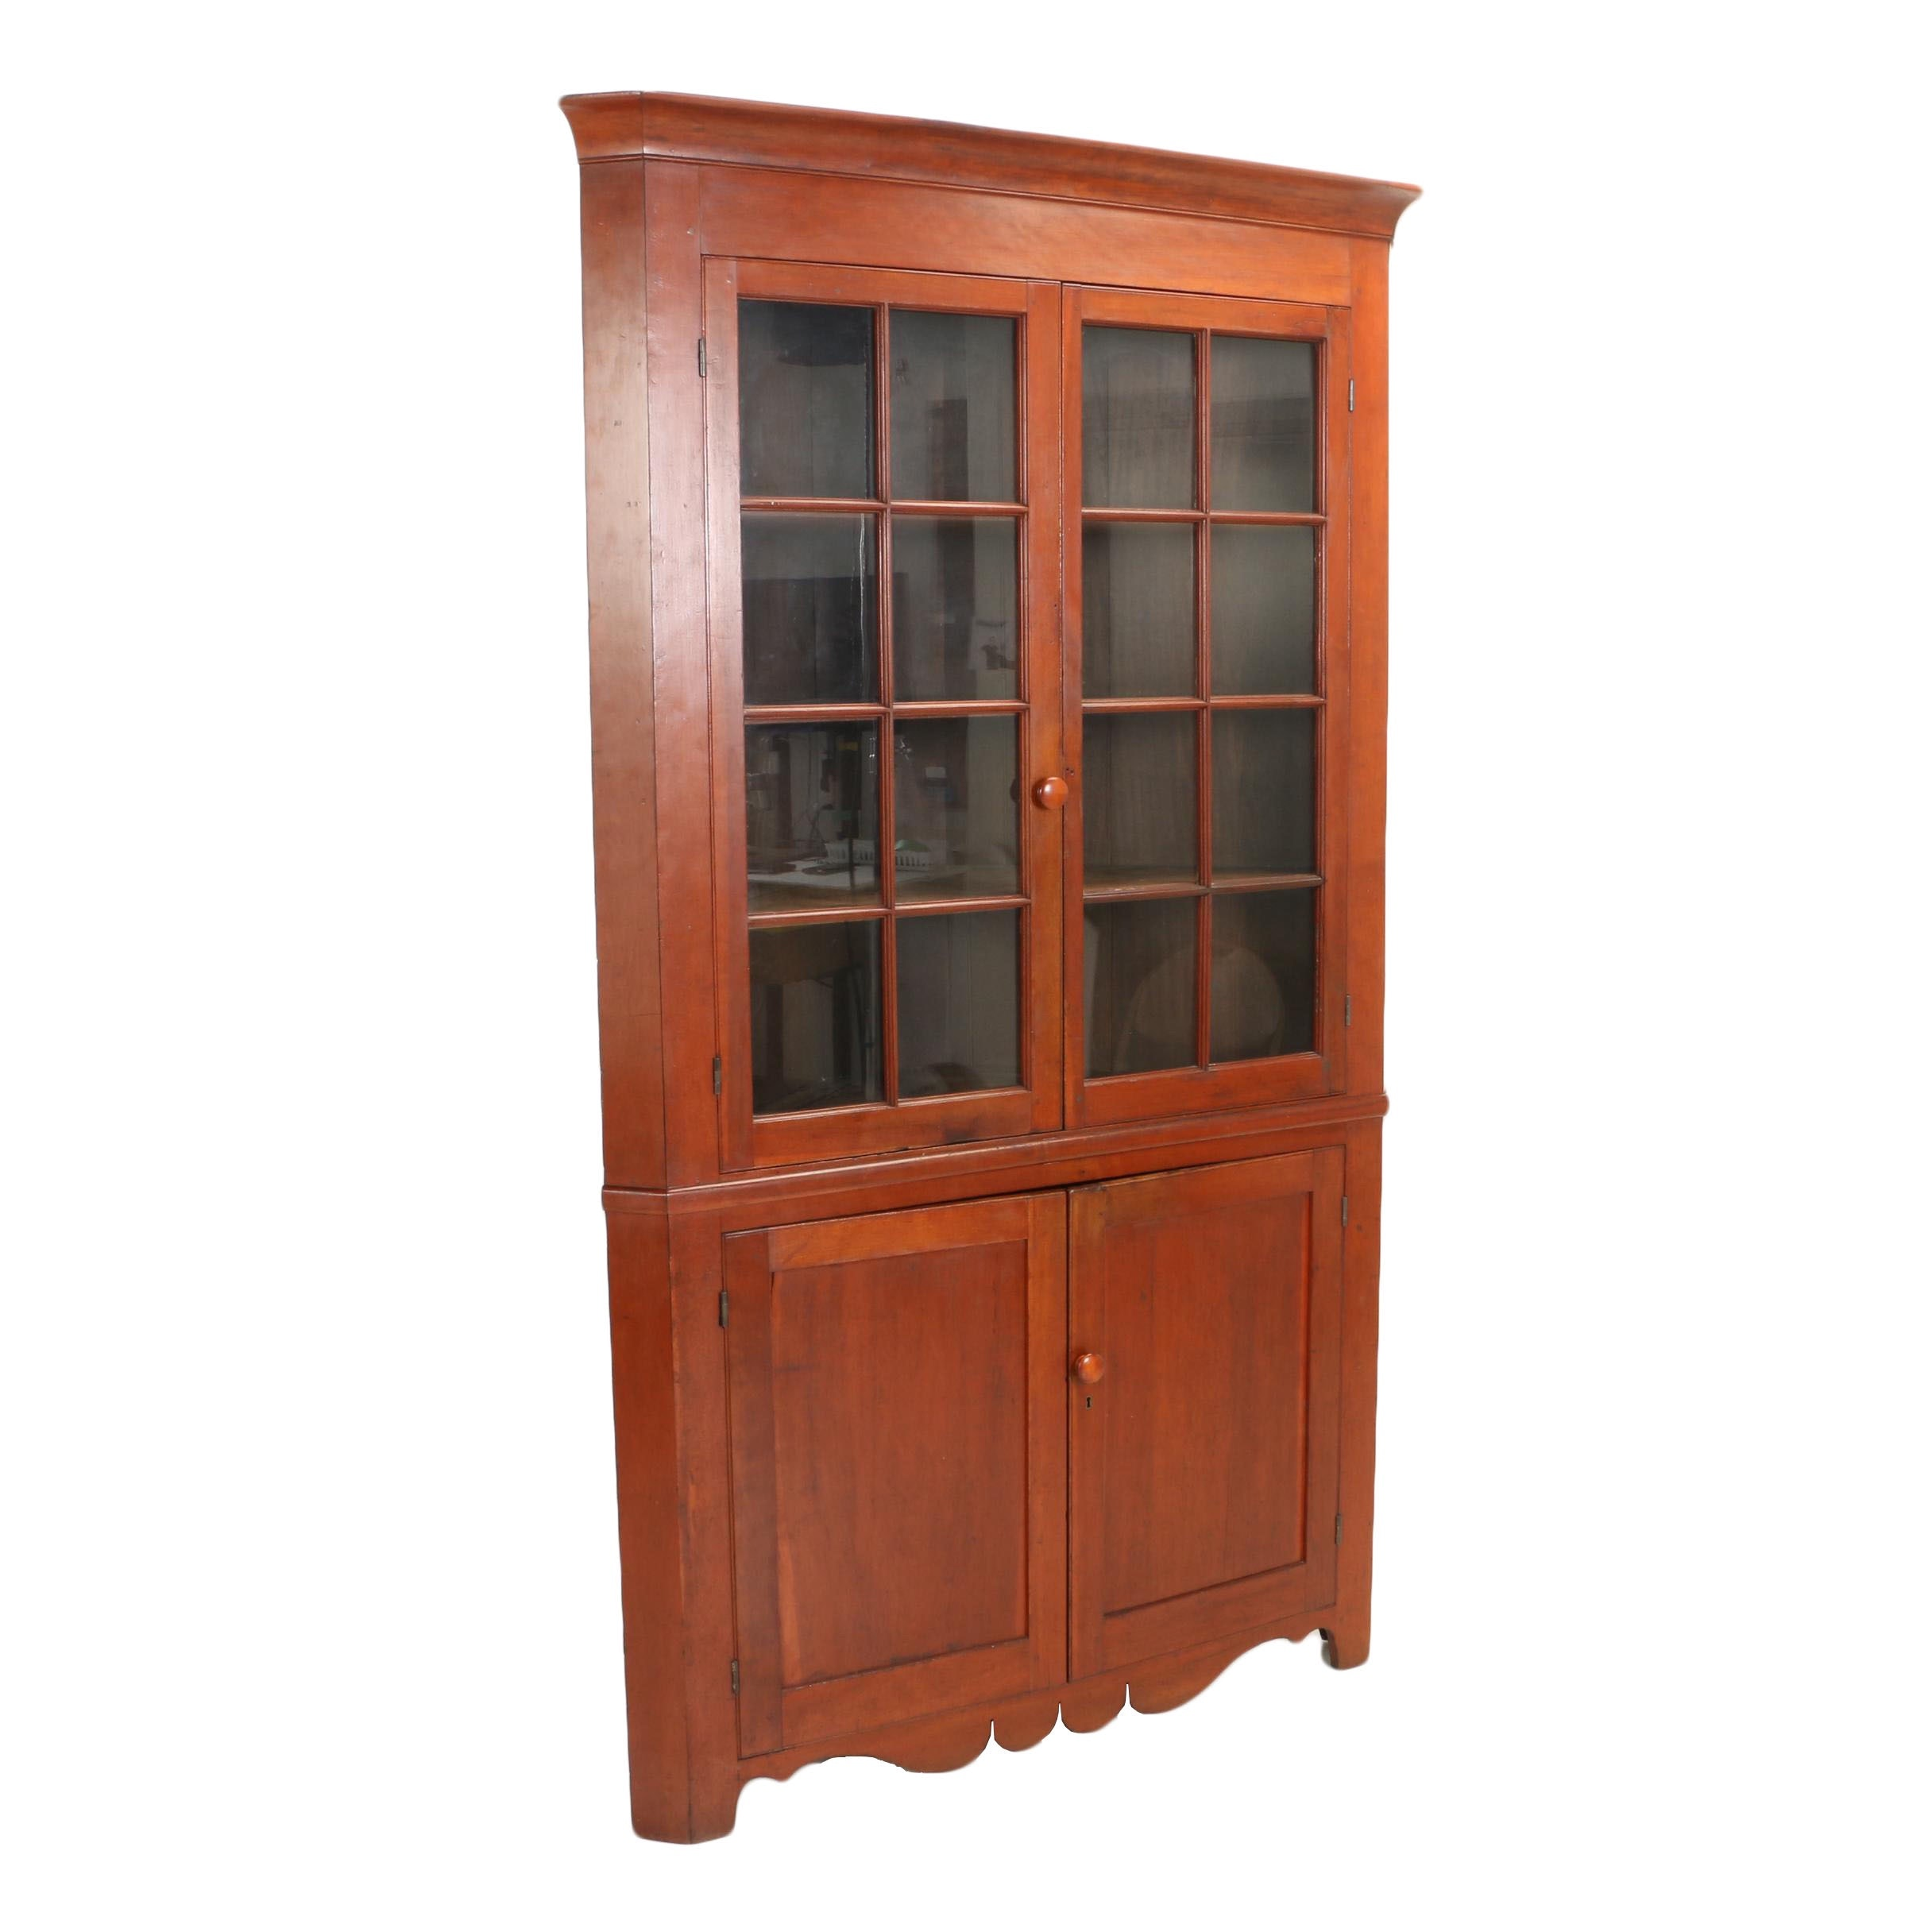 Late Federal Cherry Corner Cupboard, Possibly Ohio Valley, Circa 1840